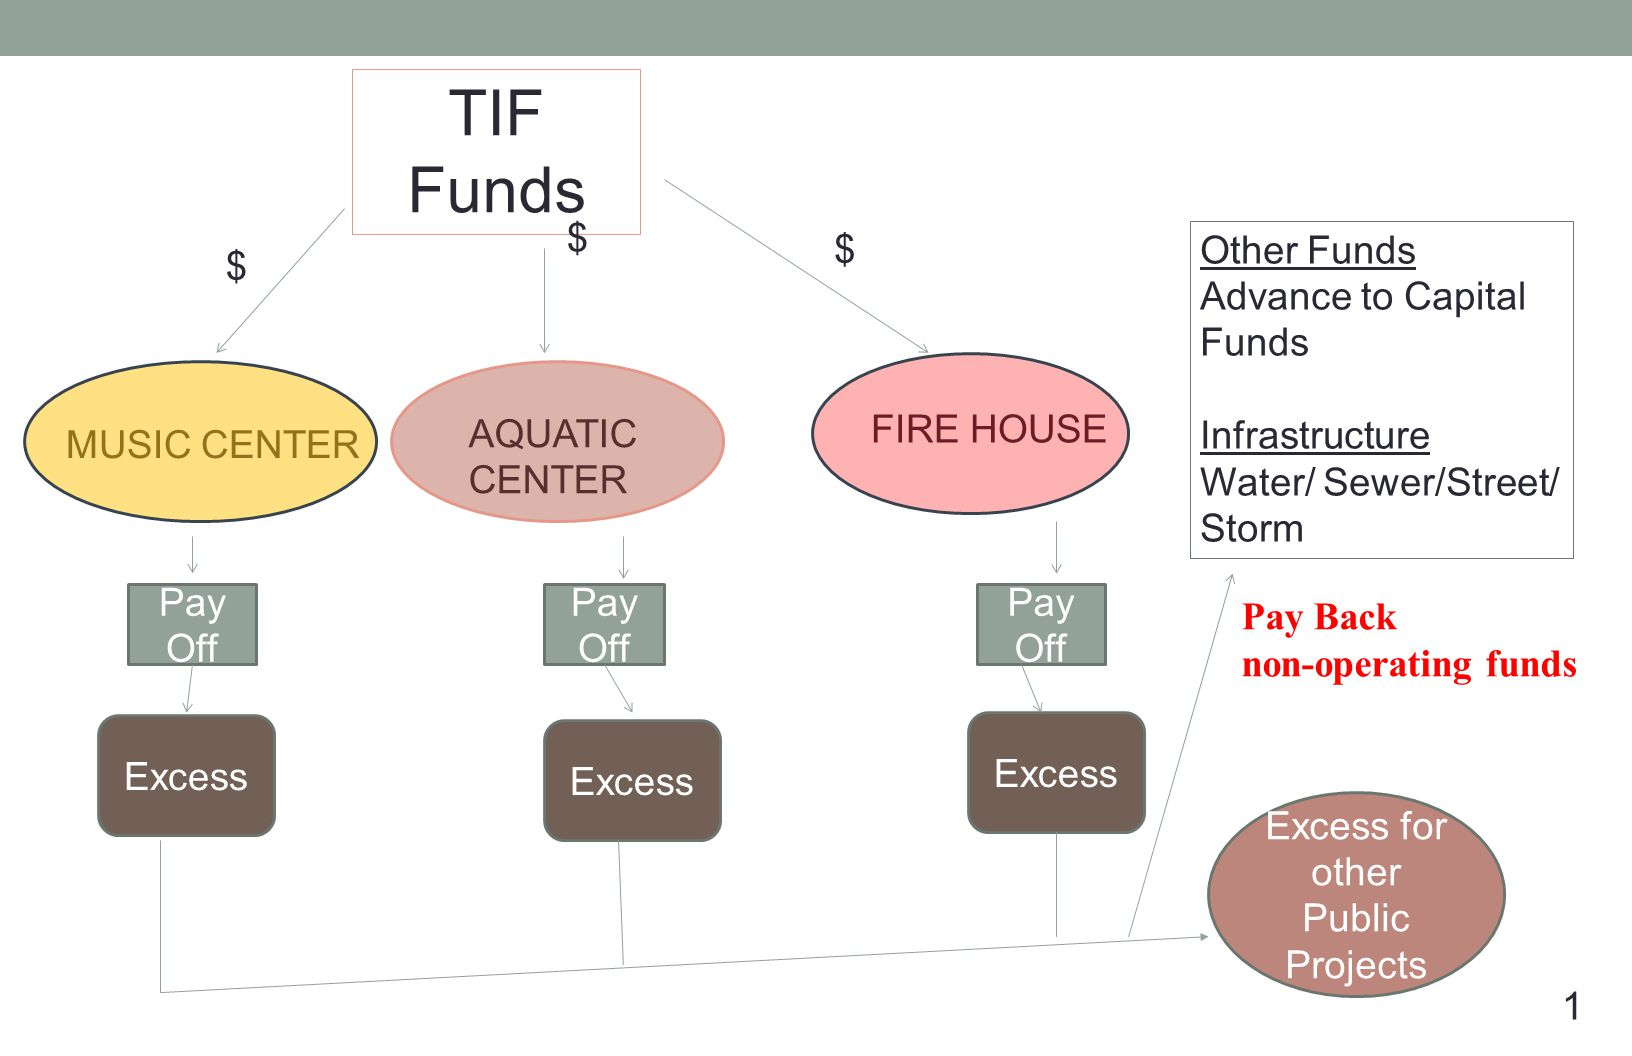 1 MUSIC CENTER AQUATIC CENTER FIRE HOUSE TIF Funds $ $ $ Pay Off Excess Excess for other Public Projects Pay Back non-operating funds Other Funds Advance to Capital Funds Infrastructure Water/ Sewer/Street/ Storm